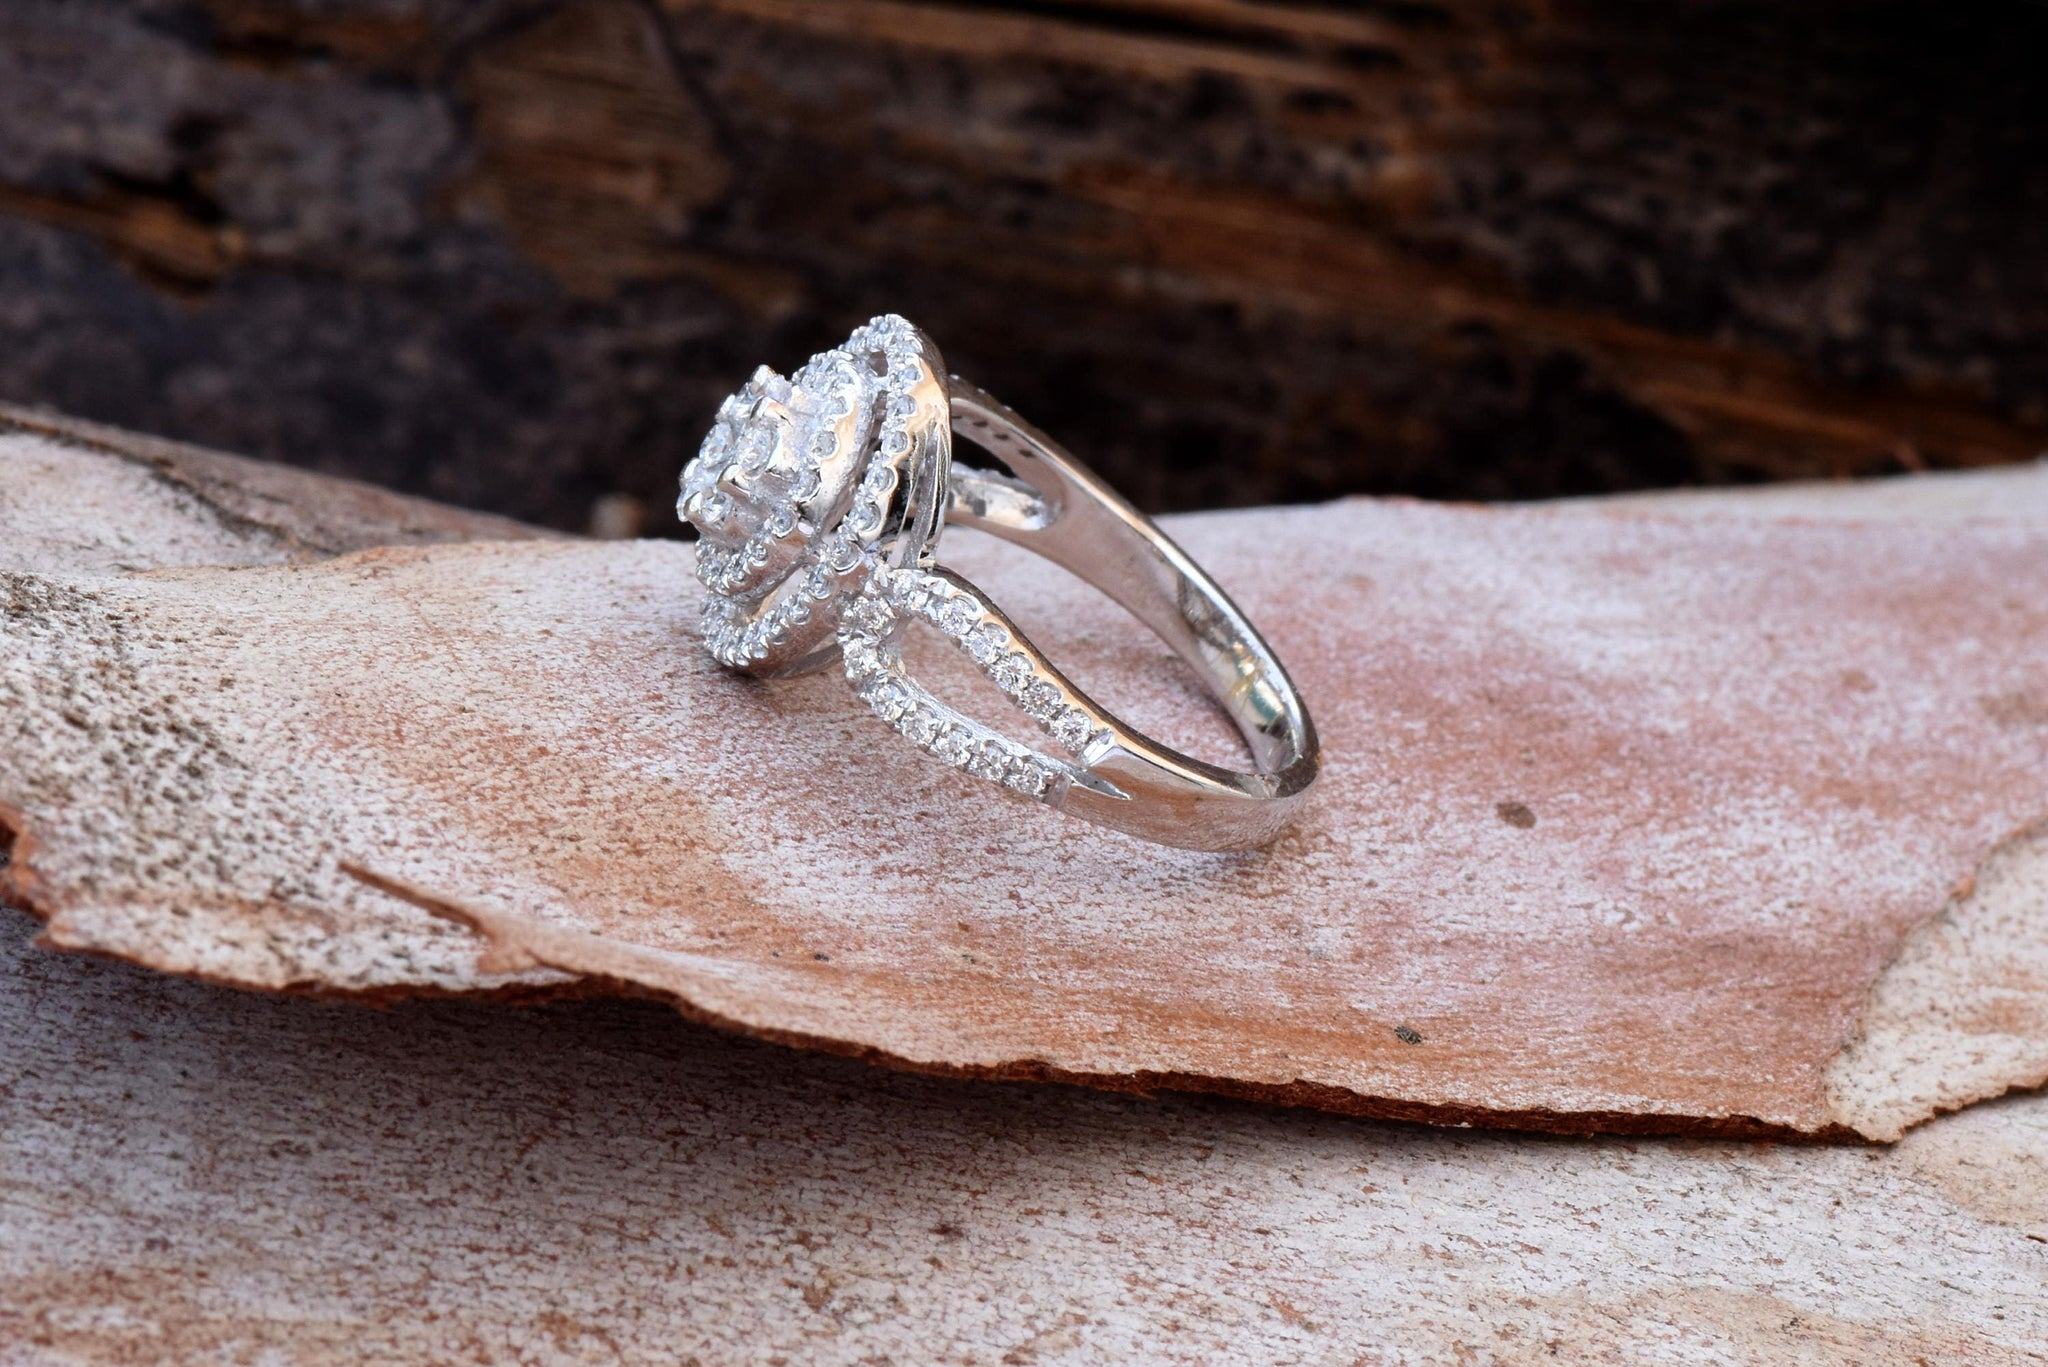 Cluster engagement ring-Diamond Engagement Ring-White Gold Ring-Halo engagement ring-Promise ring